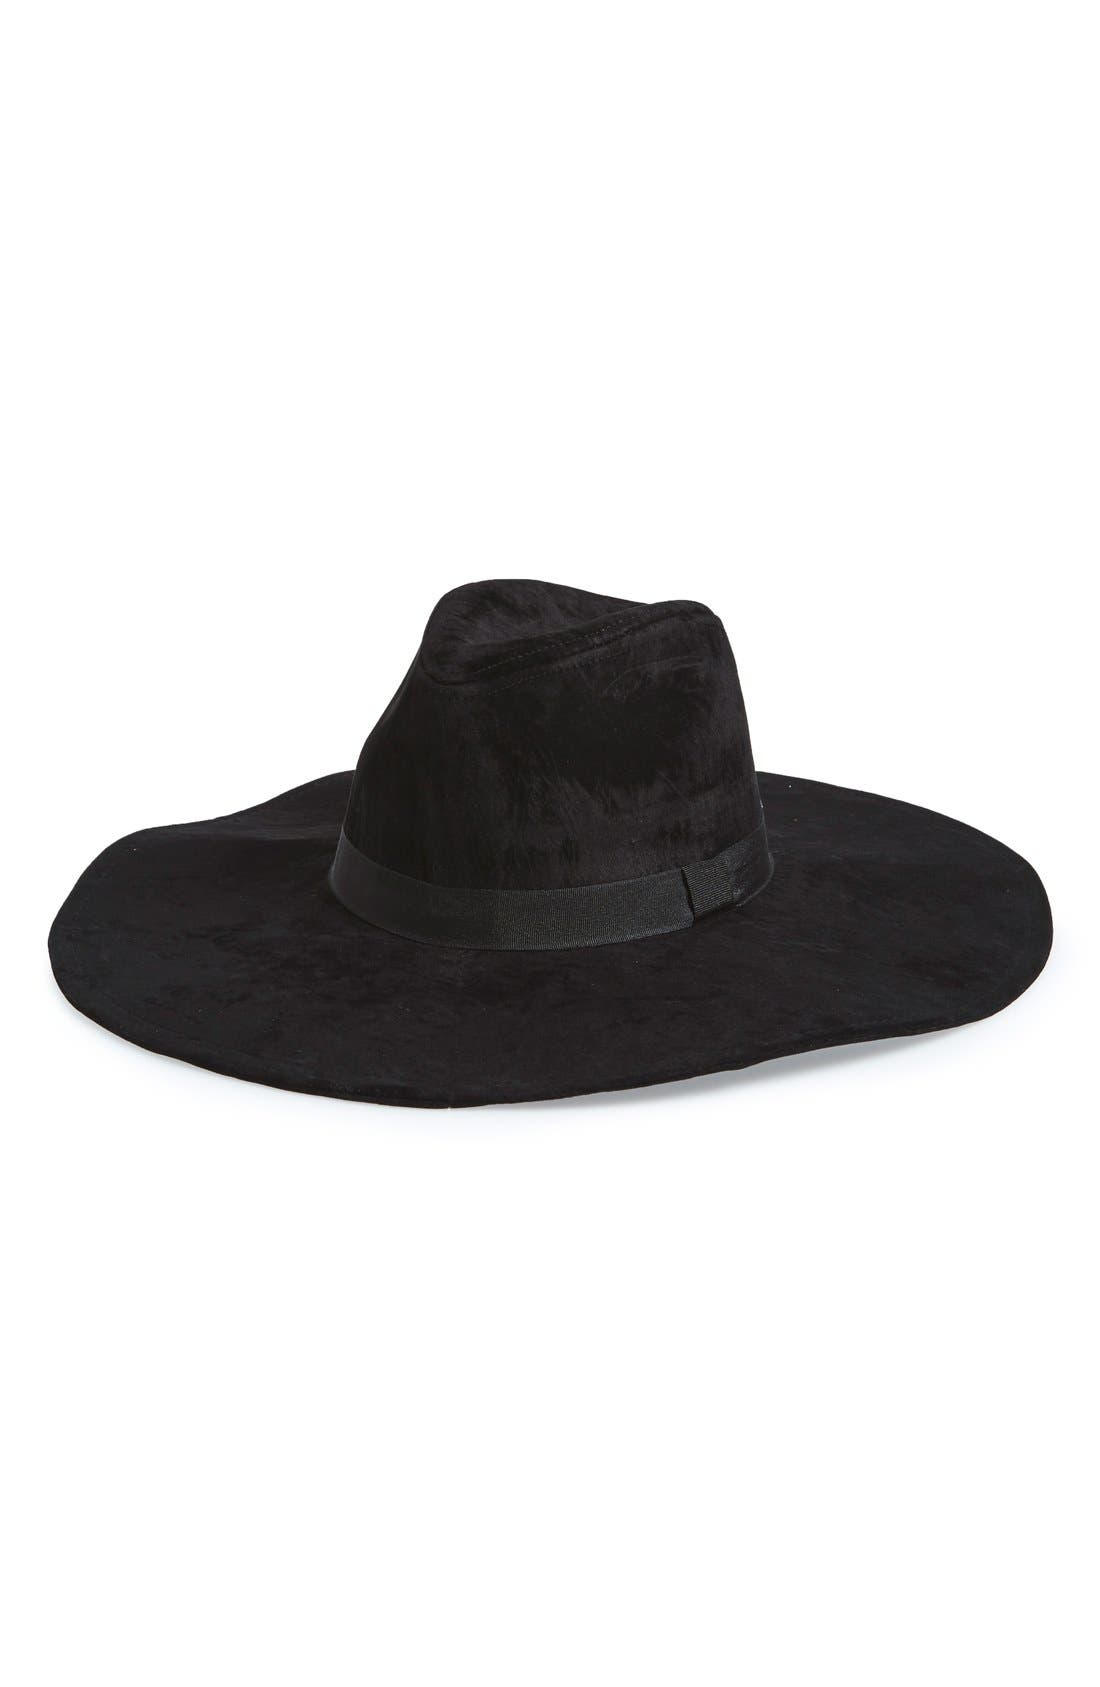 Alternate Image 1 Selected - Amici Accessories Floppy Faux Suede Fedora